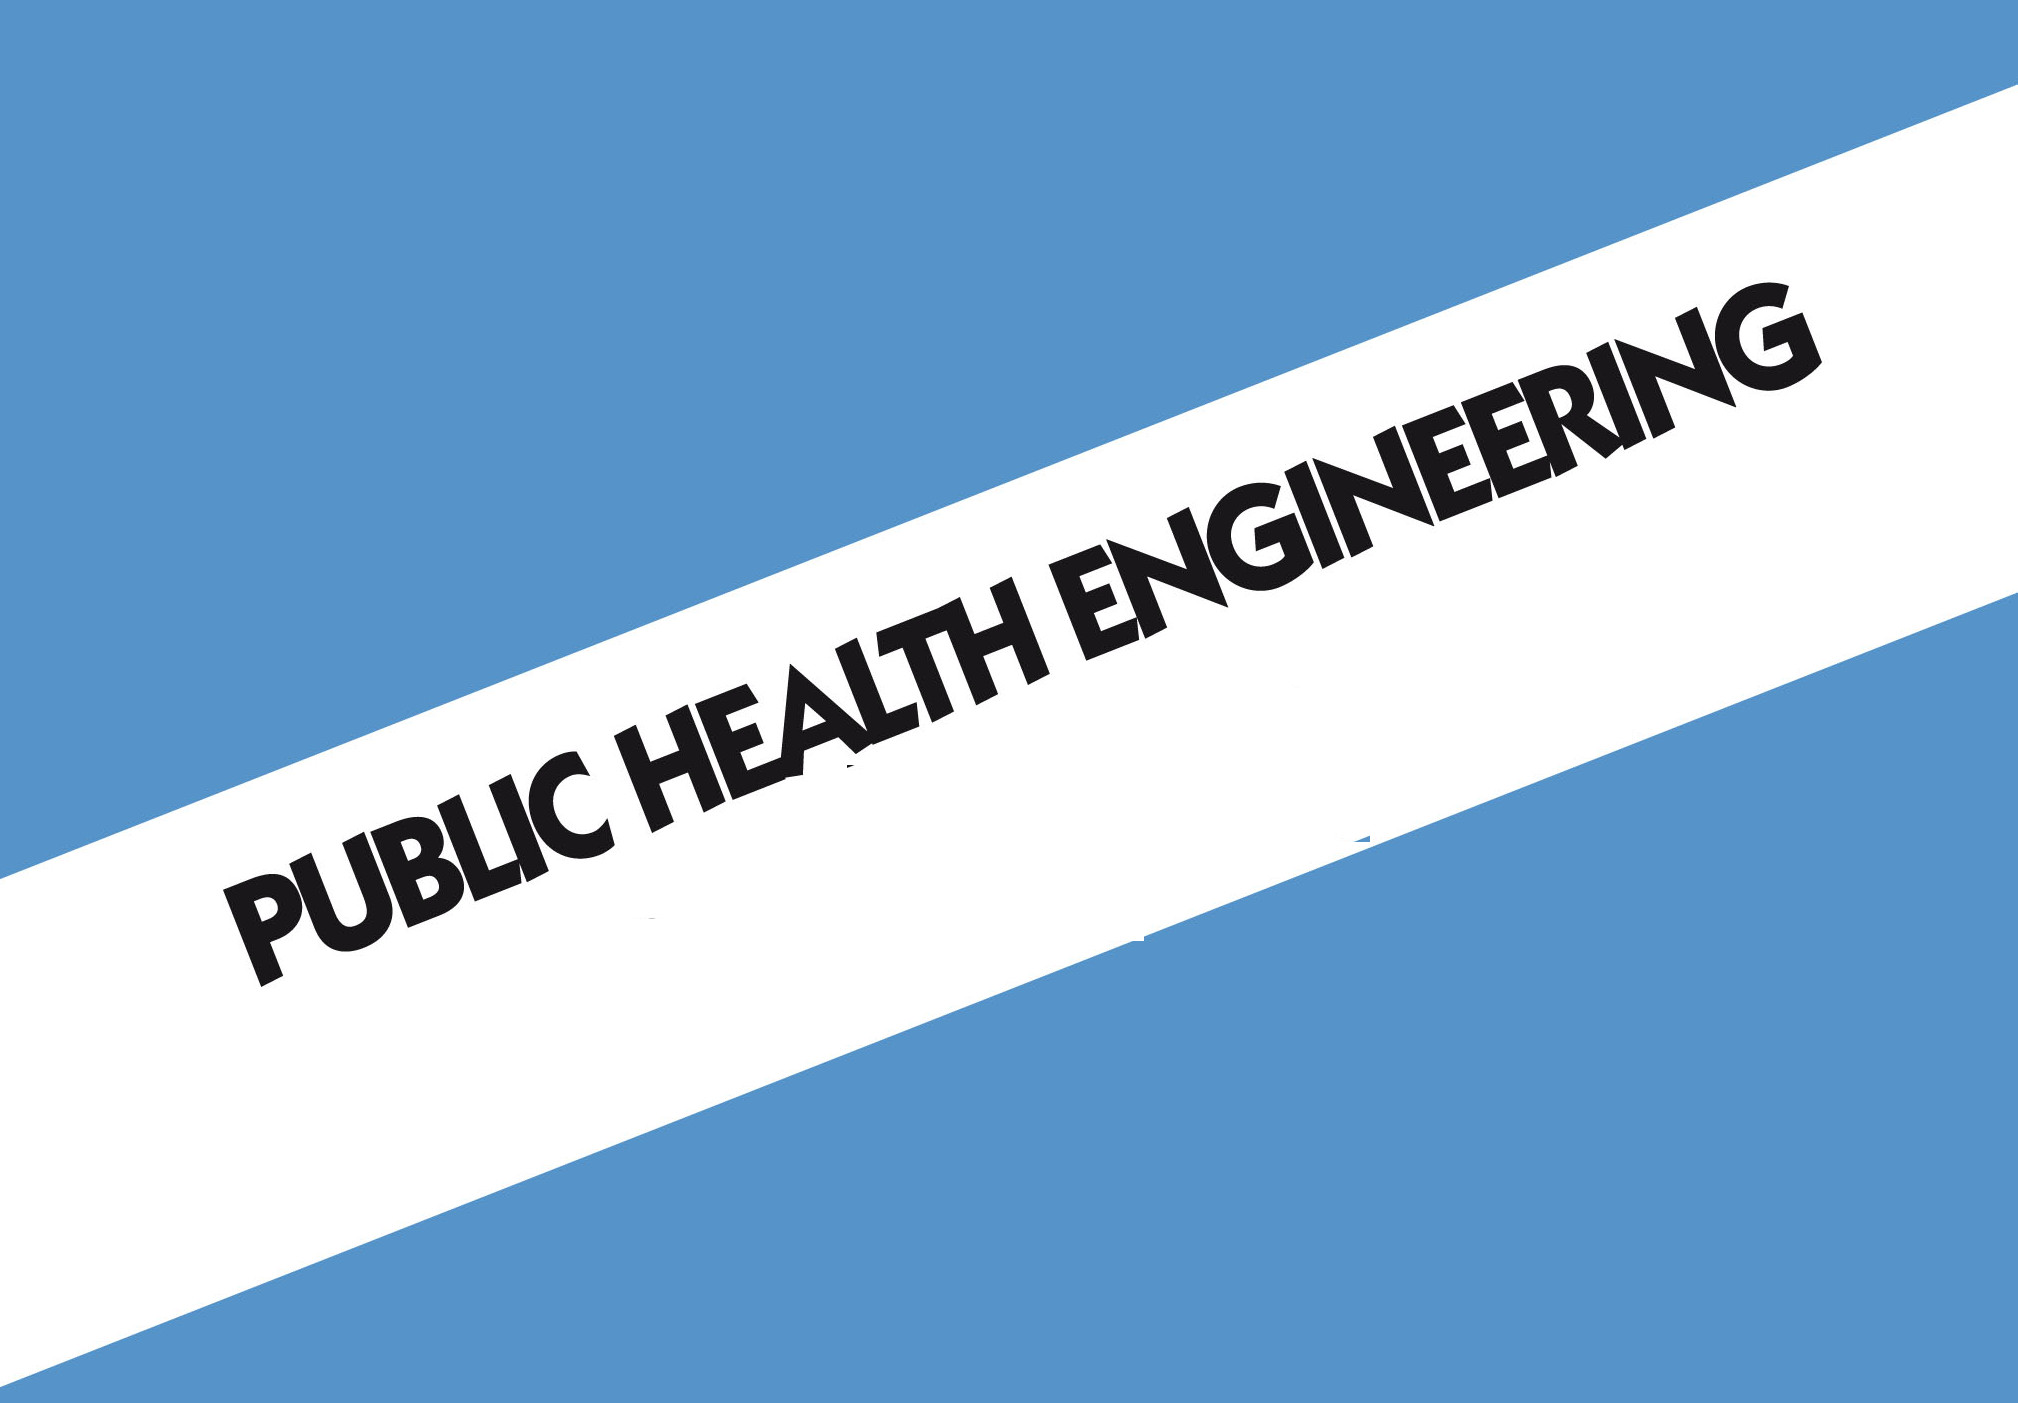 Master of Engineering (ME Public Health Engineering)